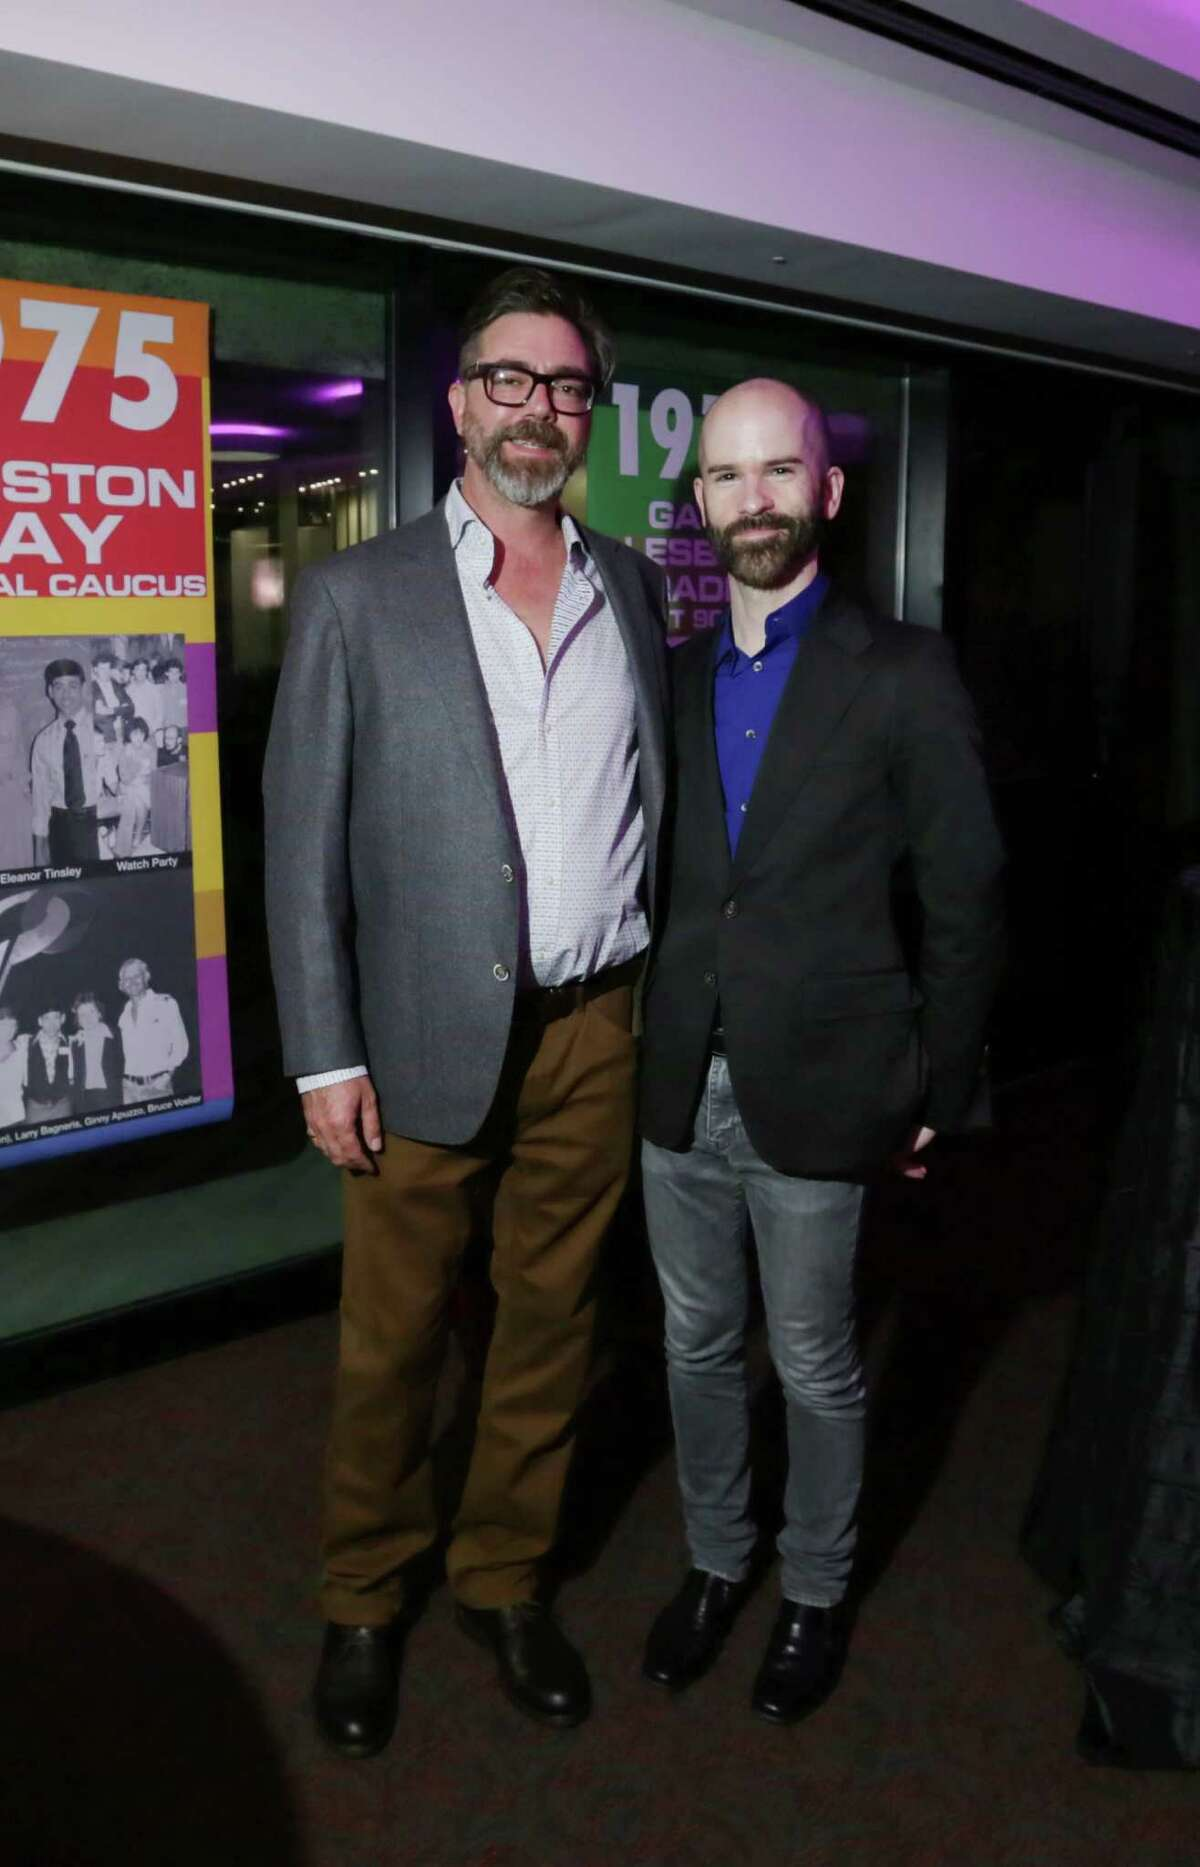 """People pose for a photo at a preview party for the documentary """"The Trouble With Ray,"""" at the Alley Theatre, Wednesday, Nov. 11, 2015, in Houston."""